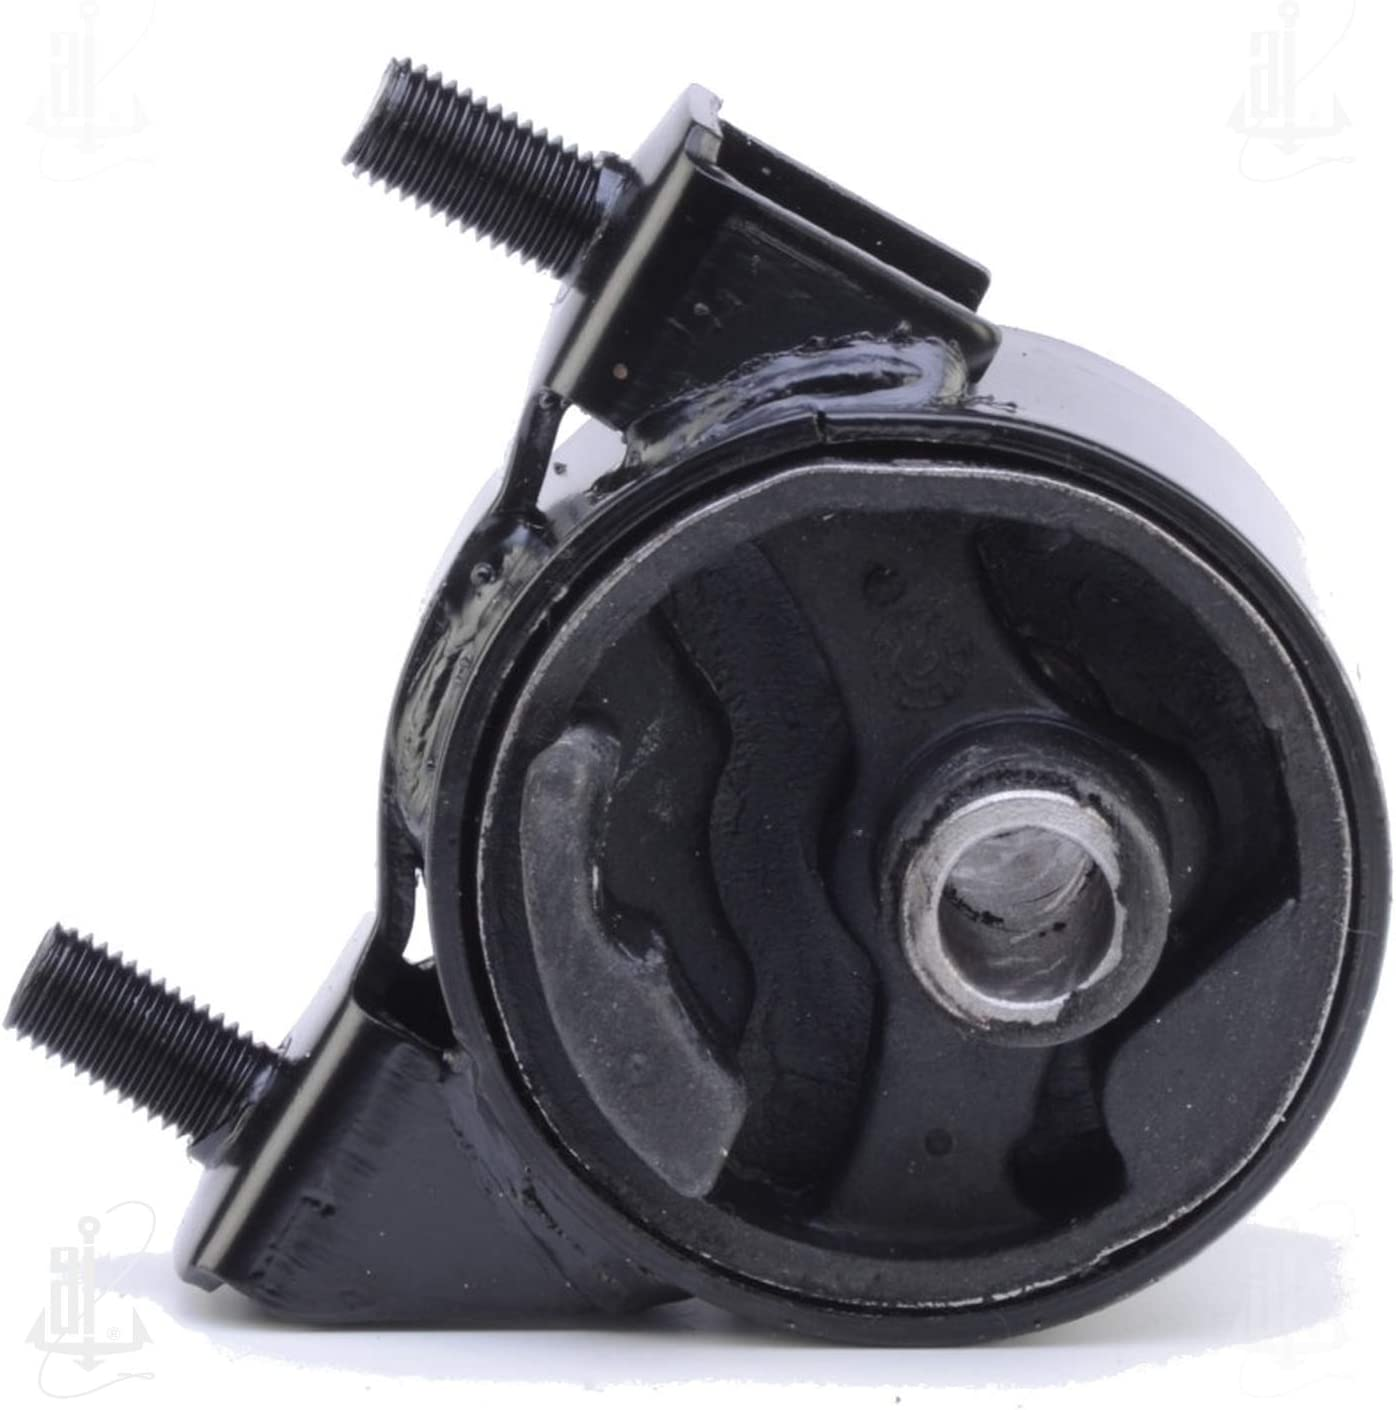 Anchor Price reduction 2843 Department store Transmission Mount